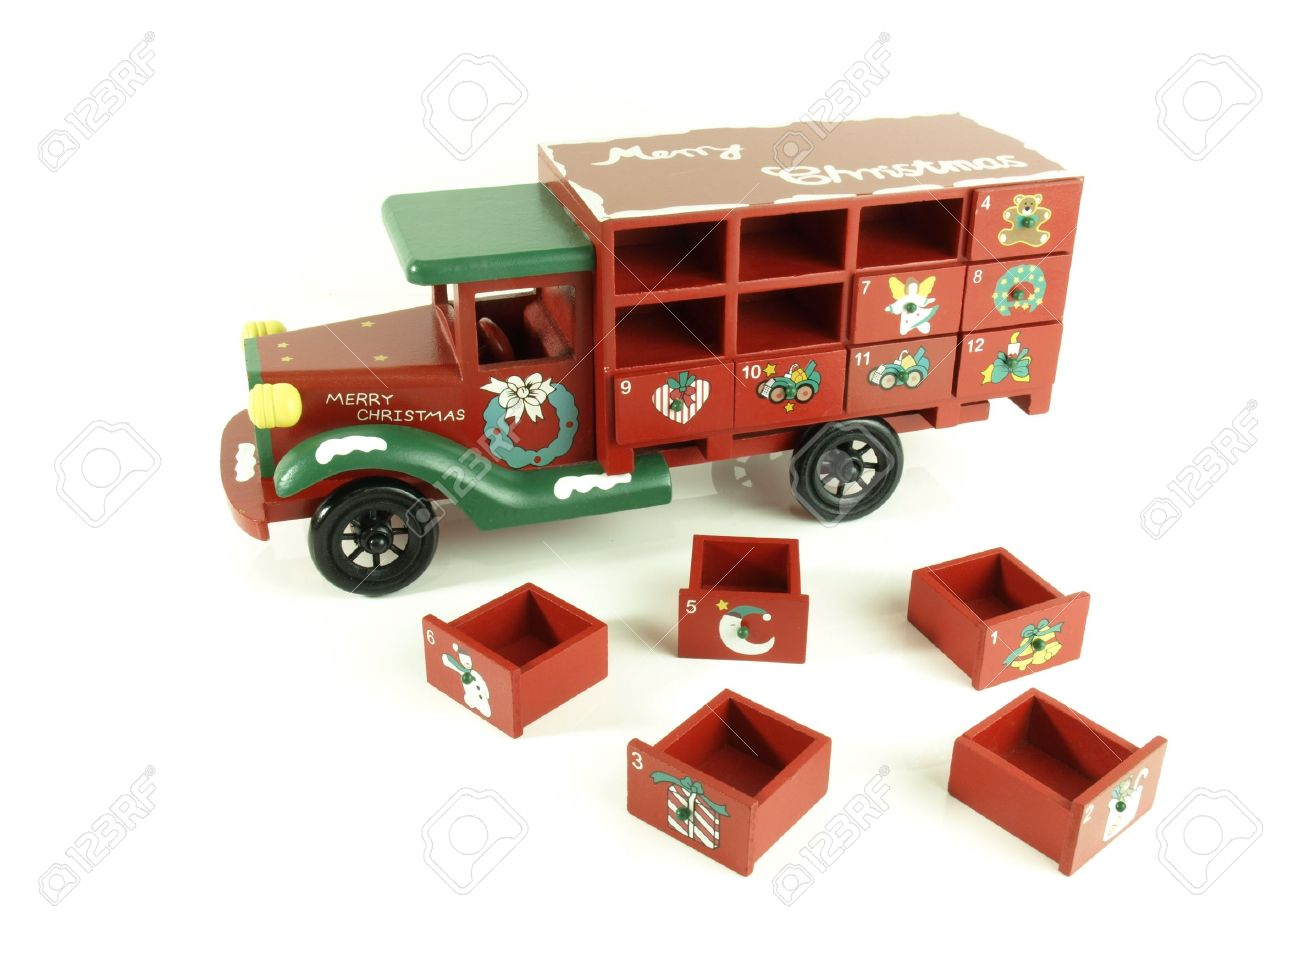 Christmas advent calendar old wooden lorry with drawers Stock Photo - 11512204